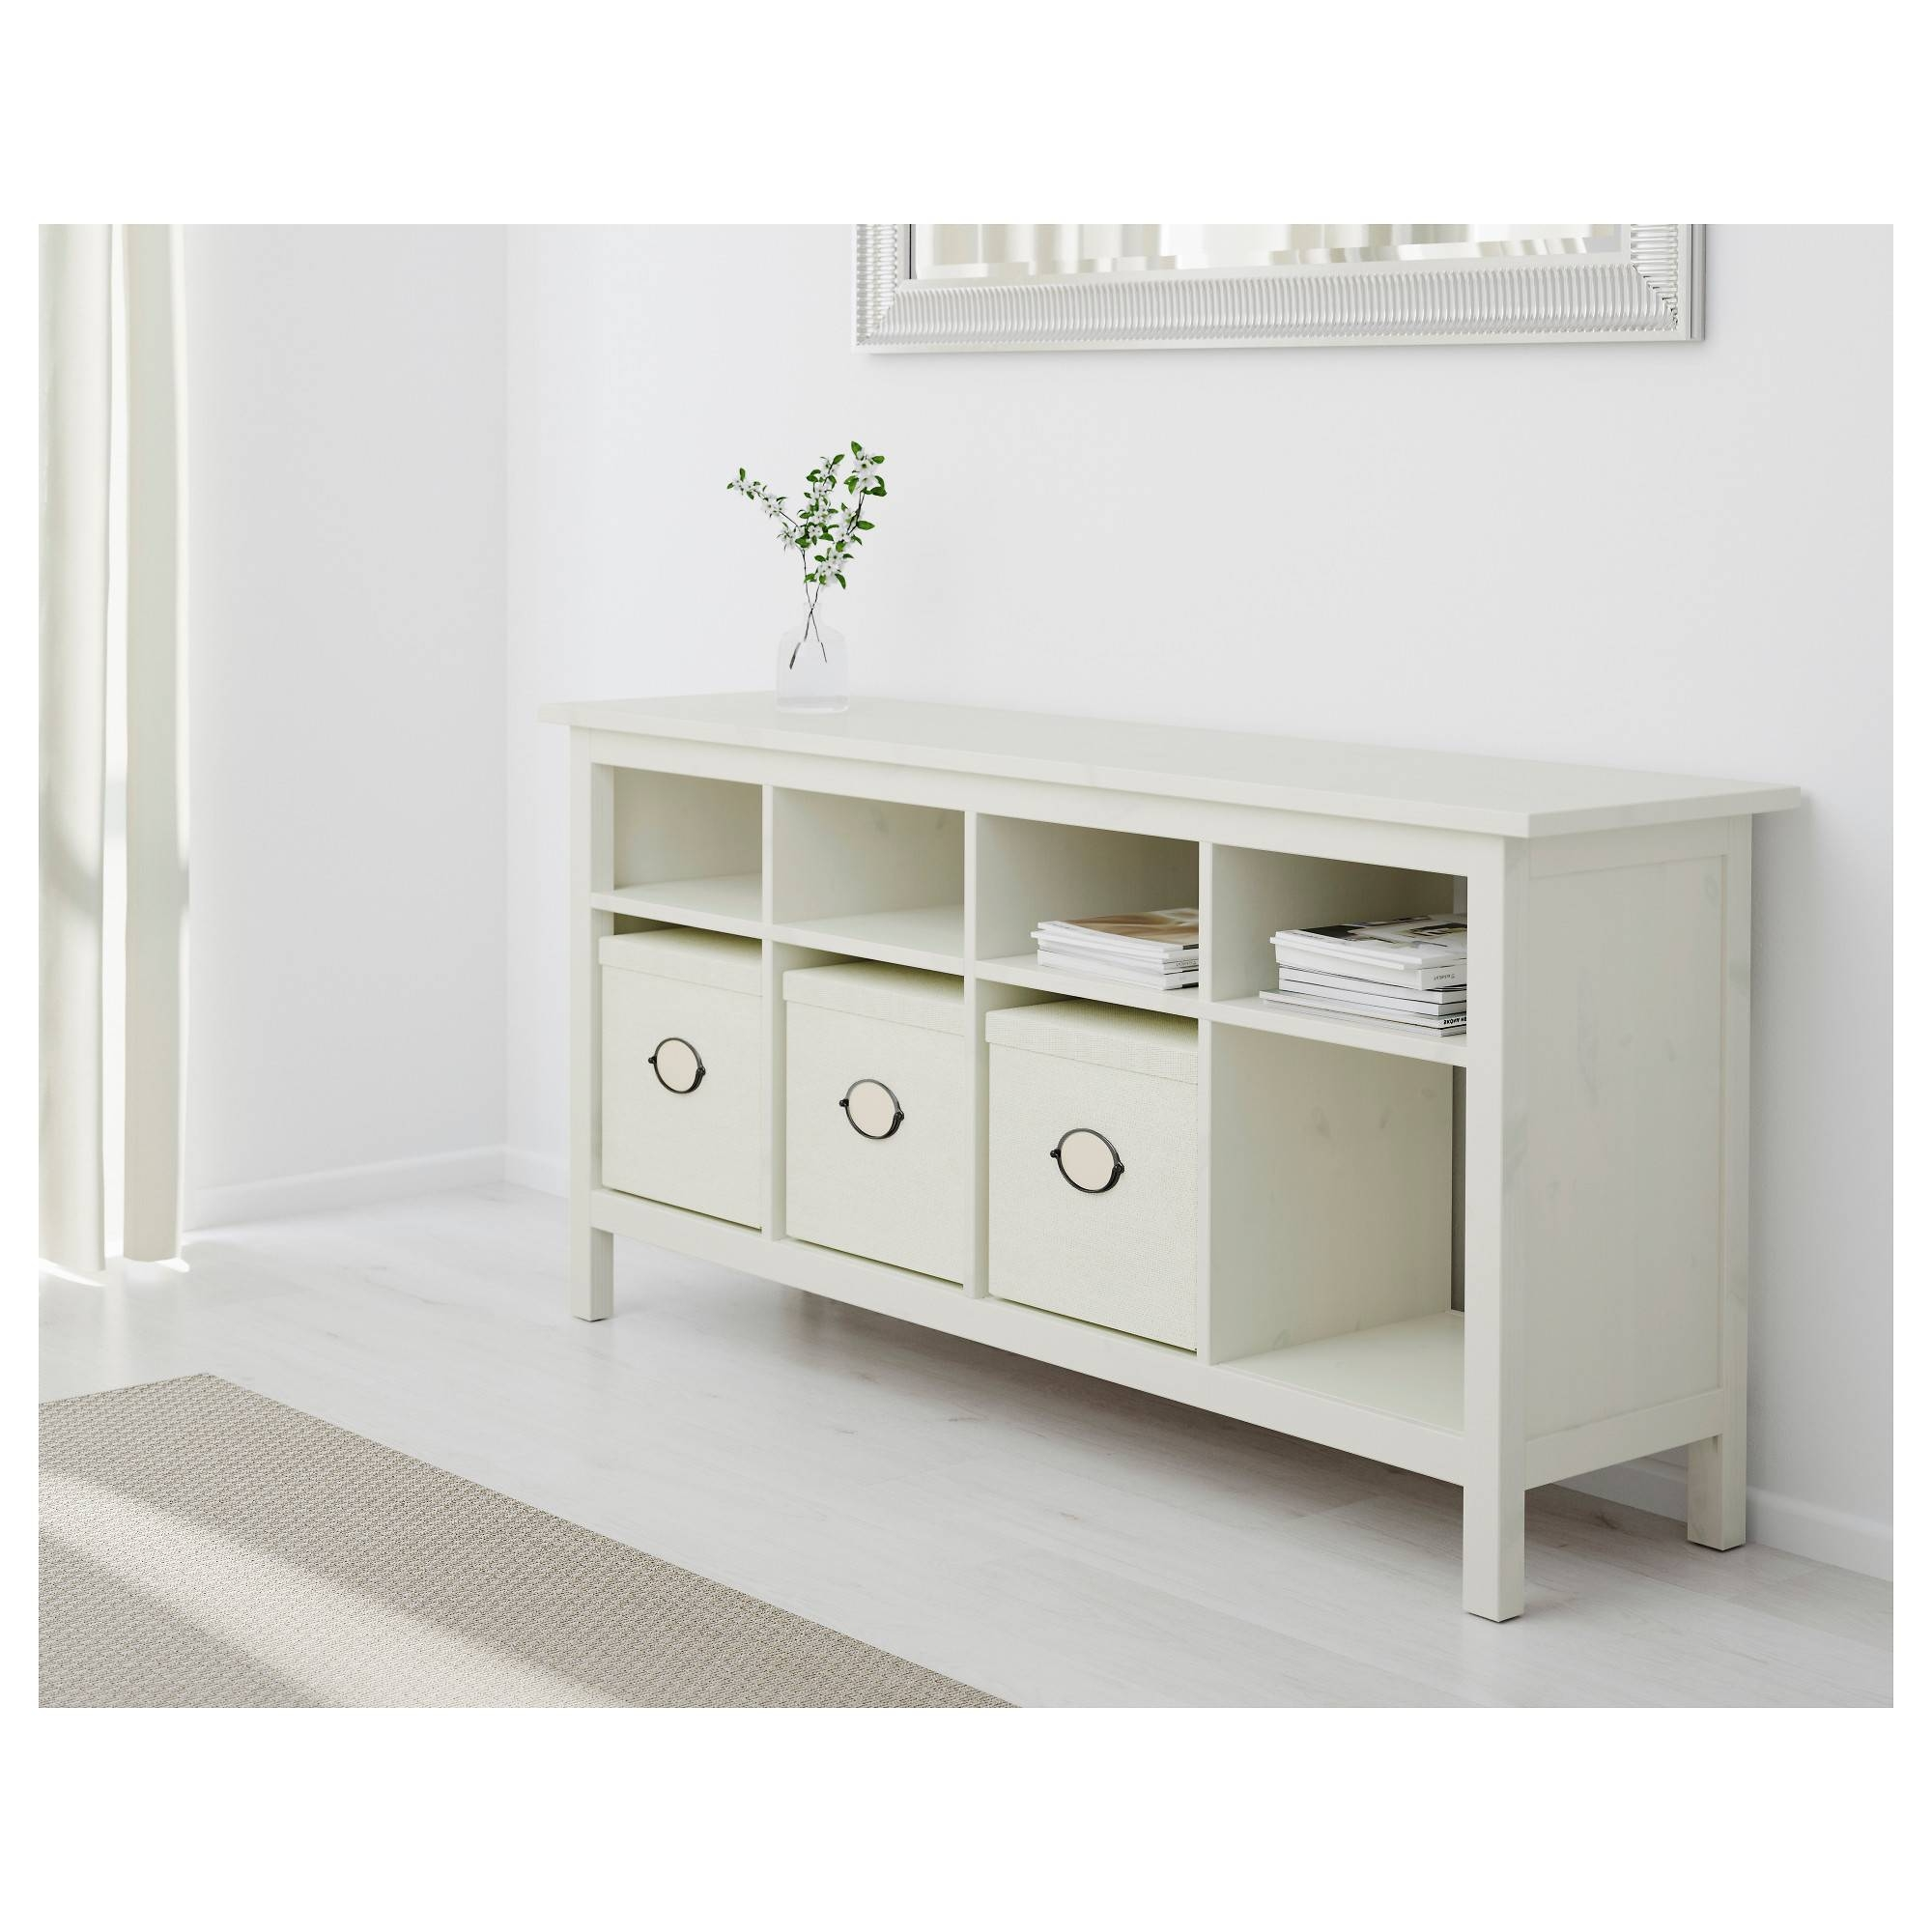 Hemnes Console Table White Stain 157x40 Cm – Ikea Pertaining To Hemnes Sideboards (View 10 of 15)